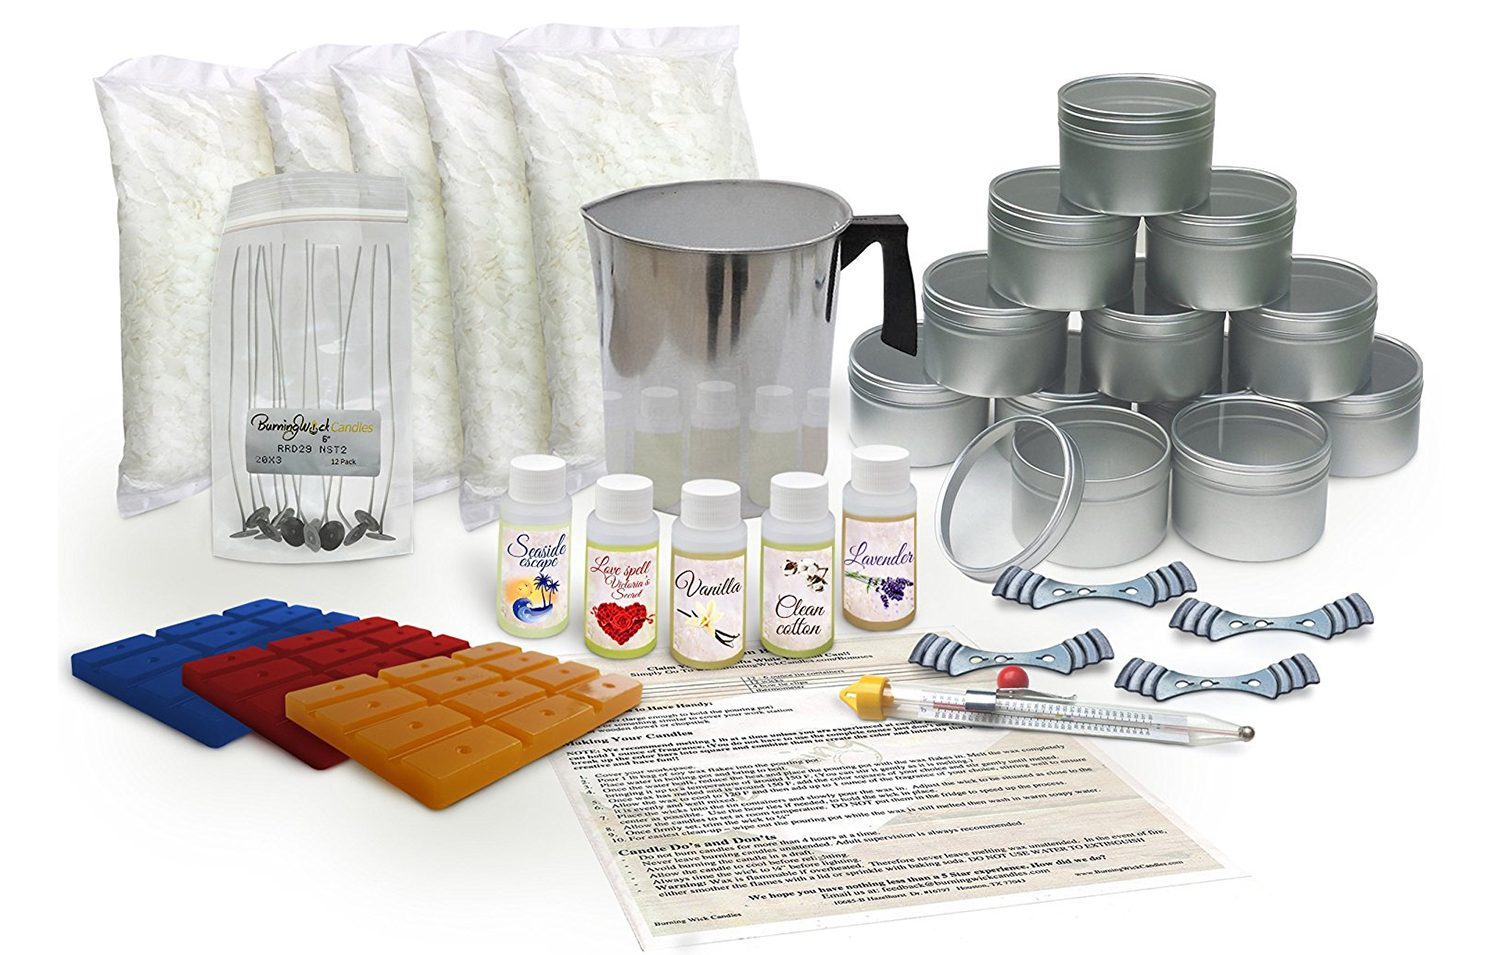 Burning Wick Candles Soy Candle Wax Making Kit